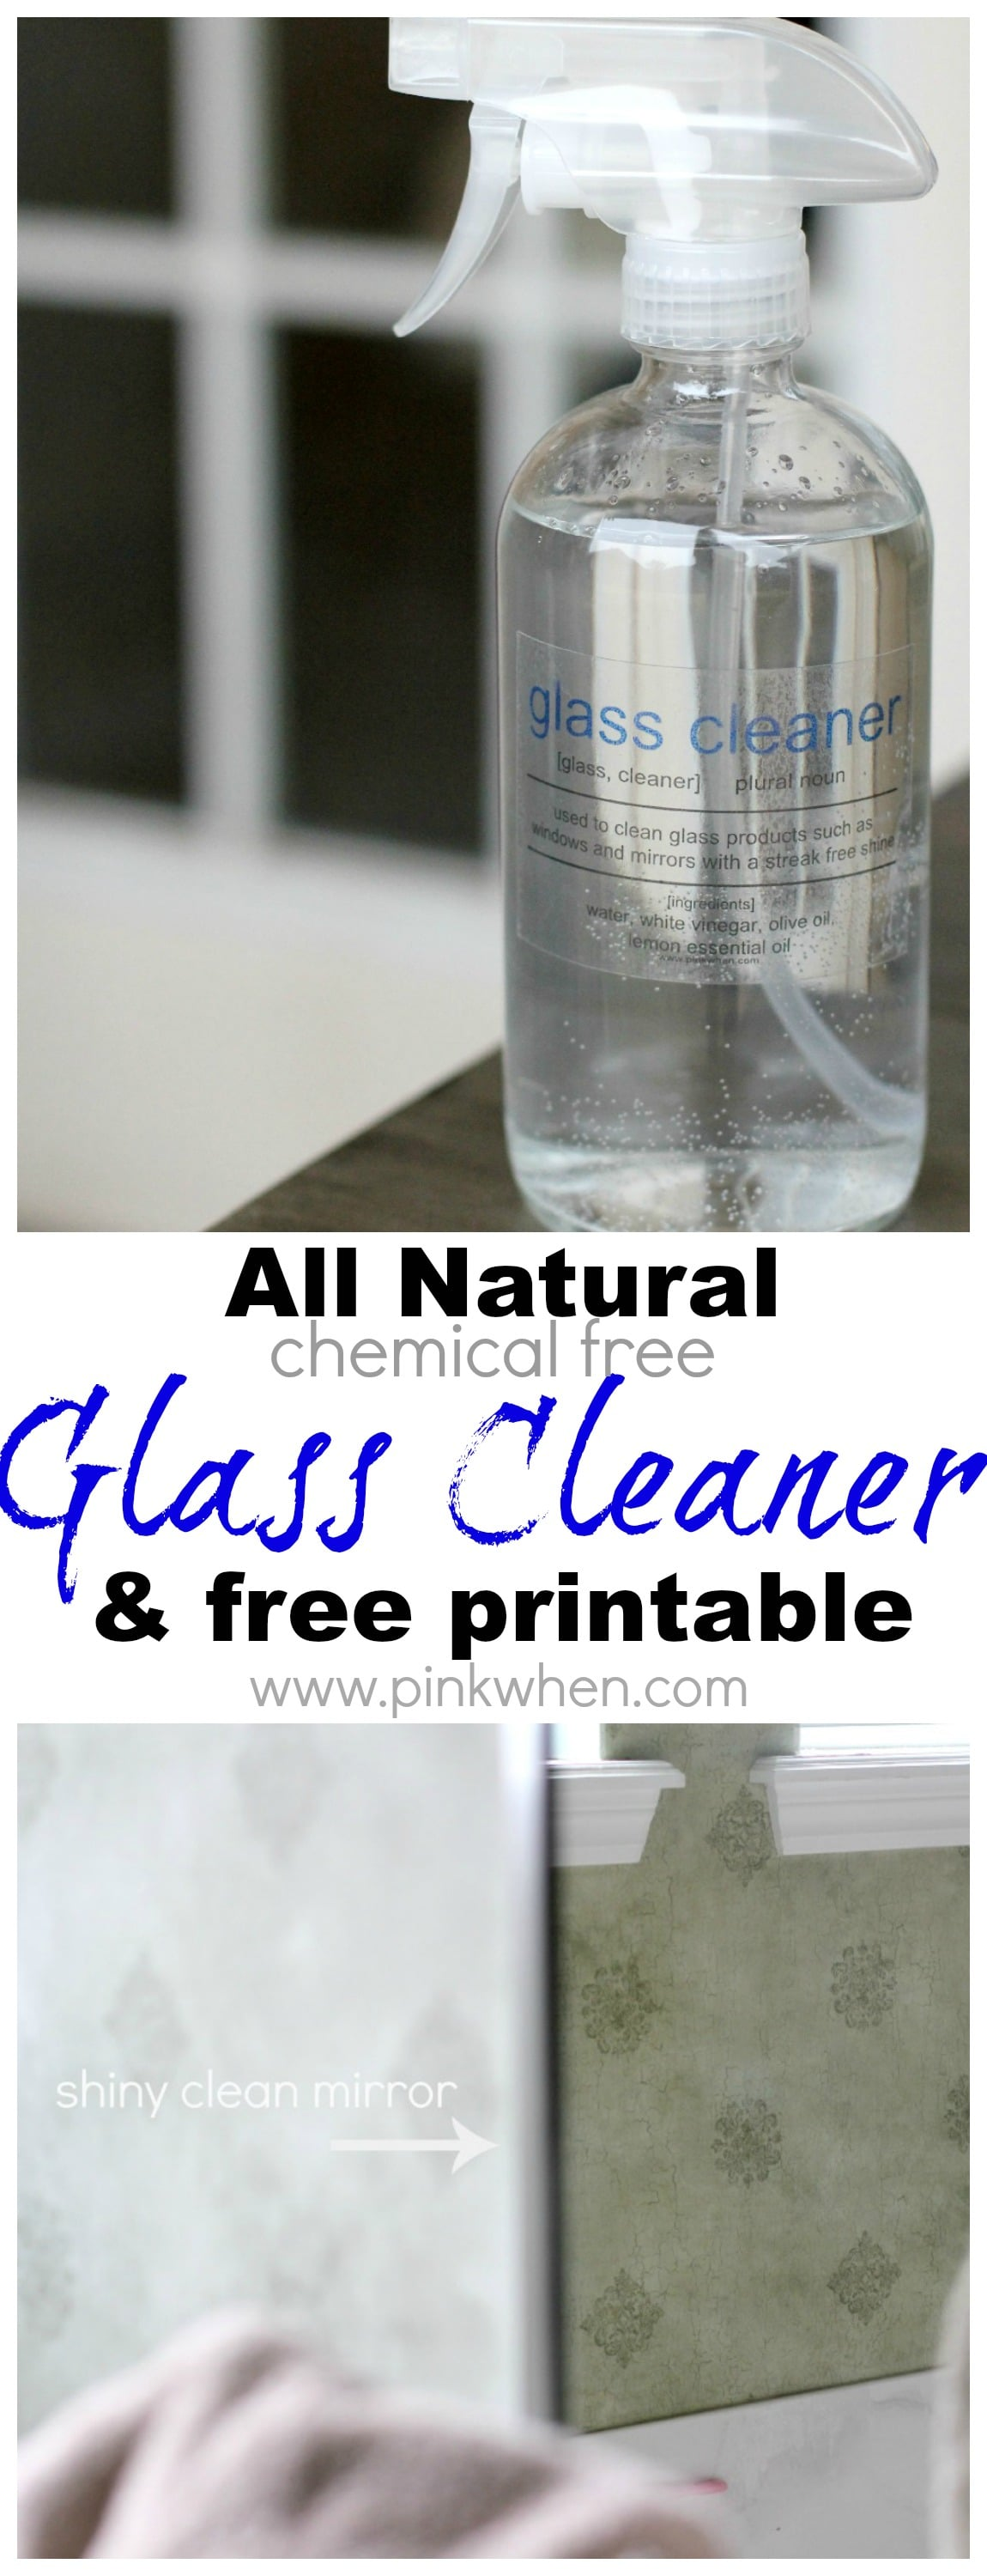 DIY All Natural Glass Cleaner @pinkwhen www.pinkwhen.com